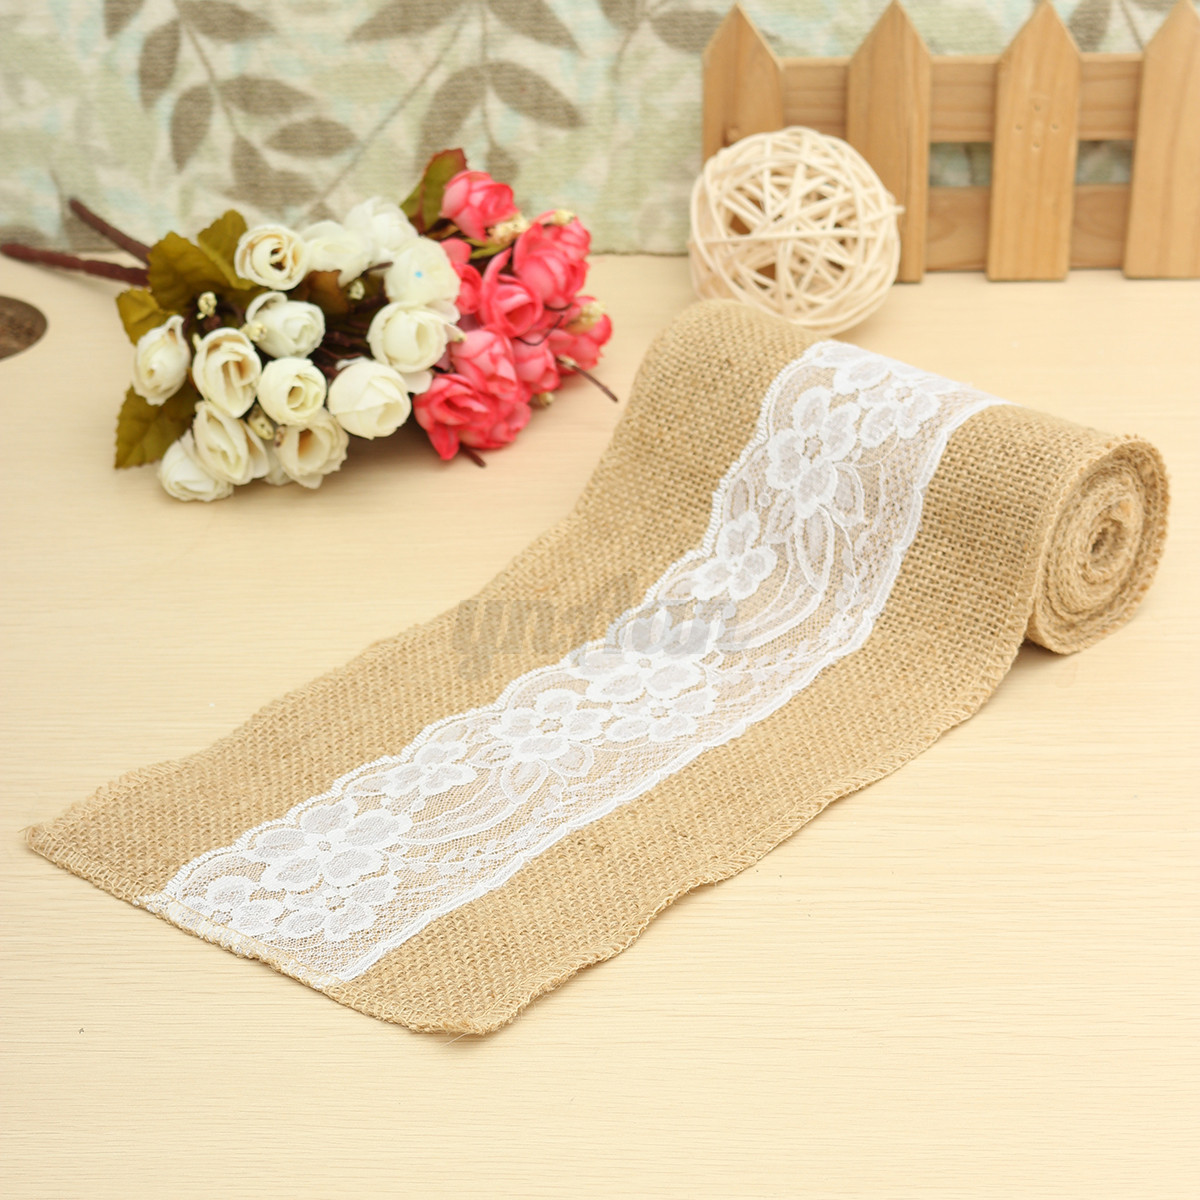 burlap chair sashes medical high 15 x 240cm vintage hessian jute lace